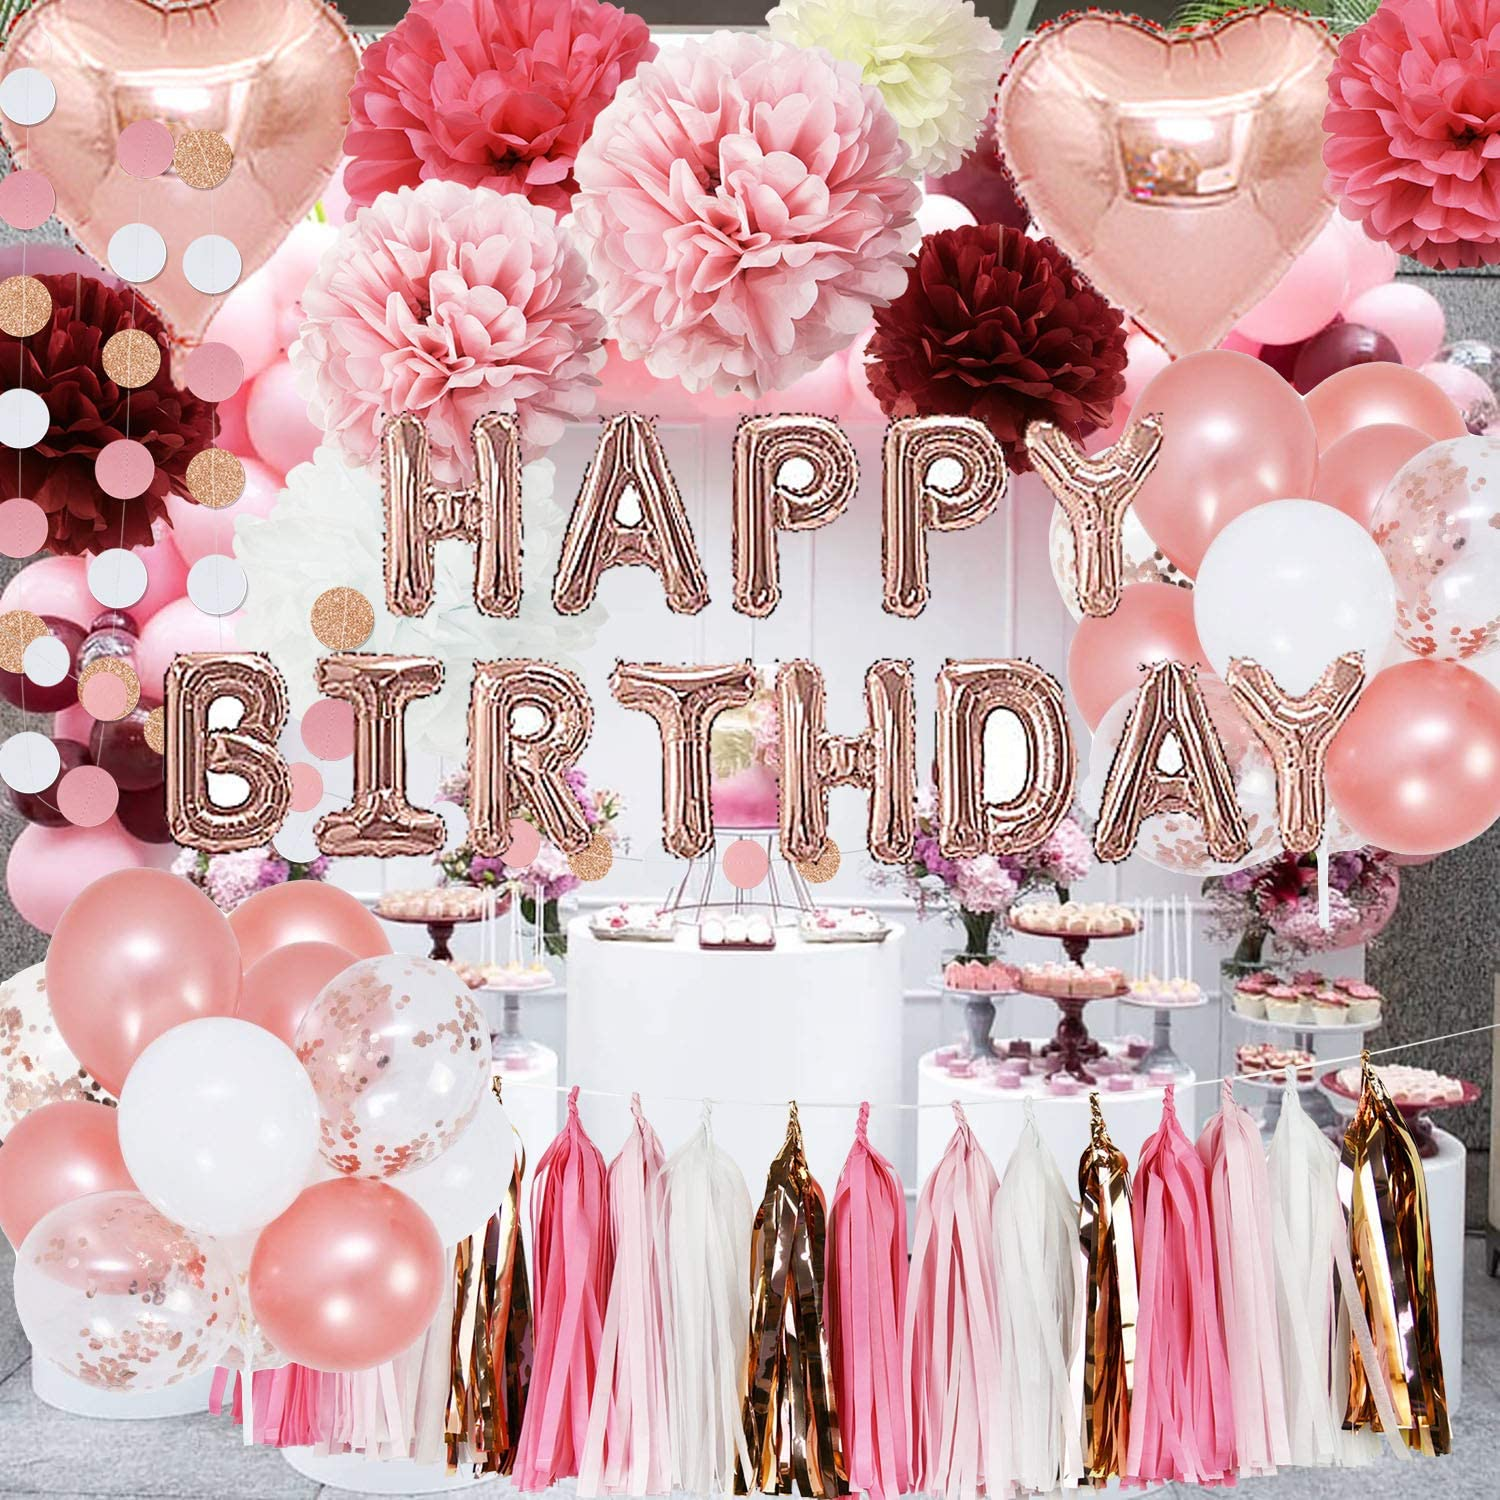 3 Packs Pink 30th Birthday Pearl Anniversary Party Table Confetti Decorations